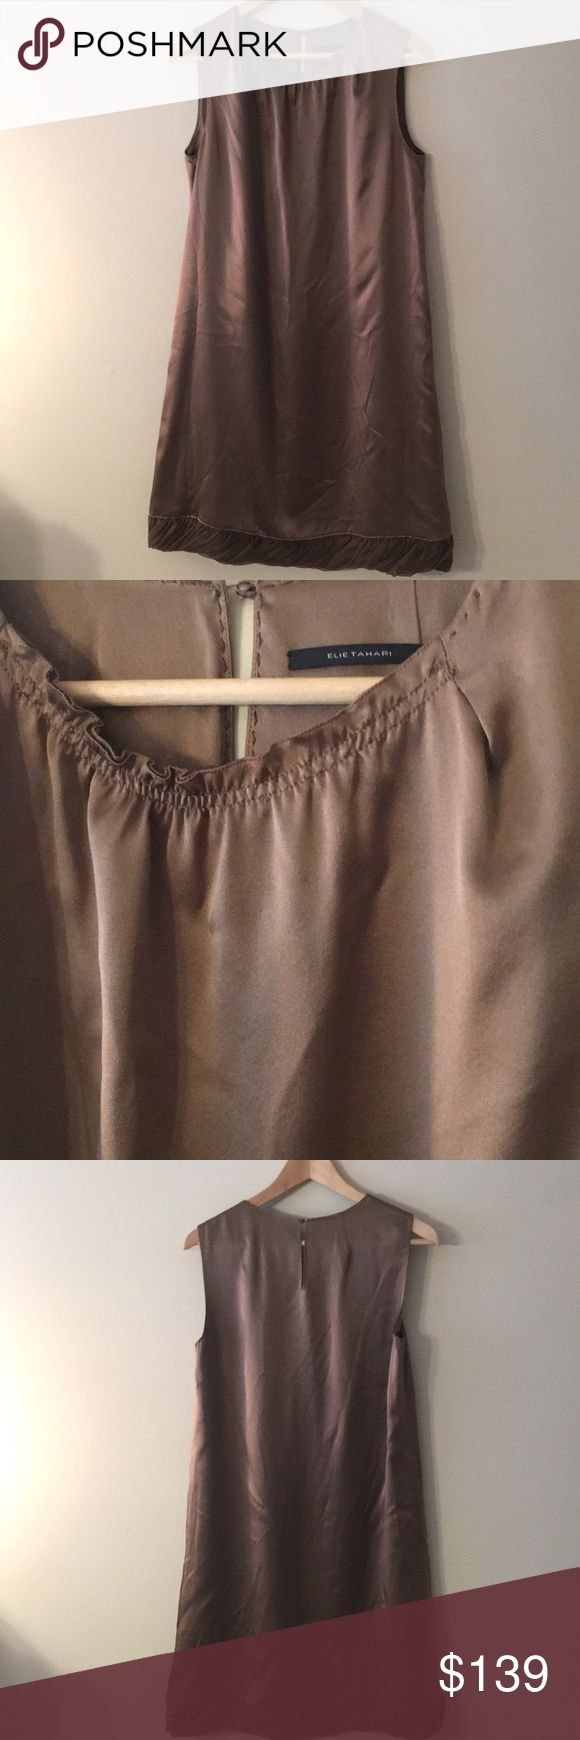 ⭐️ELIE TAHARI TAUPE SILK DRESS 💯AUTHENTIC ⭐️ELIE TAHARI DARK TAUPE SILK DRESS 💯AUTHENTIC ! SO BEAUTIFUL AND STYLISH ALWAYS ON TREND! ONLY WORN ONCE. THE SIZE IS 10. THE DRESS IS LINED. AGAIN THE COLOR IS DARK TAUPE. THE BUST MEASURES 18 INCHES ACROSS AND 36 INCHES AROUND. THE HIP MEASURES 20.5 INCHES ACROSS AND 41 INCHES AROUND. THE LENGTH IS 37.5 INCHES LONG. Elie Tahari Dresses